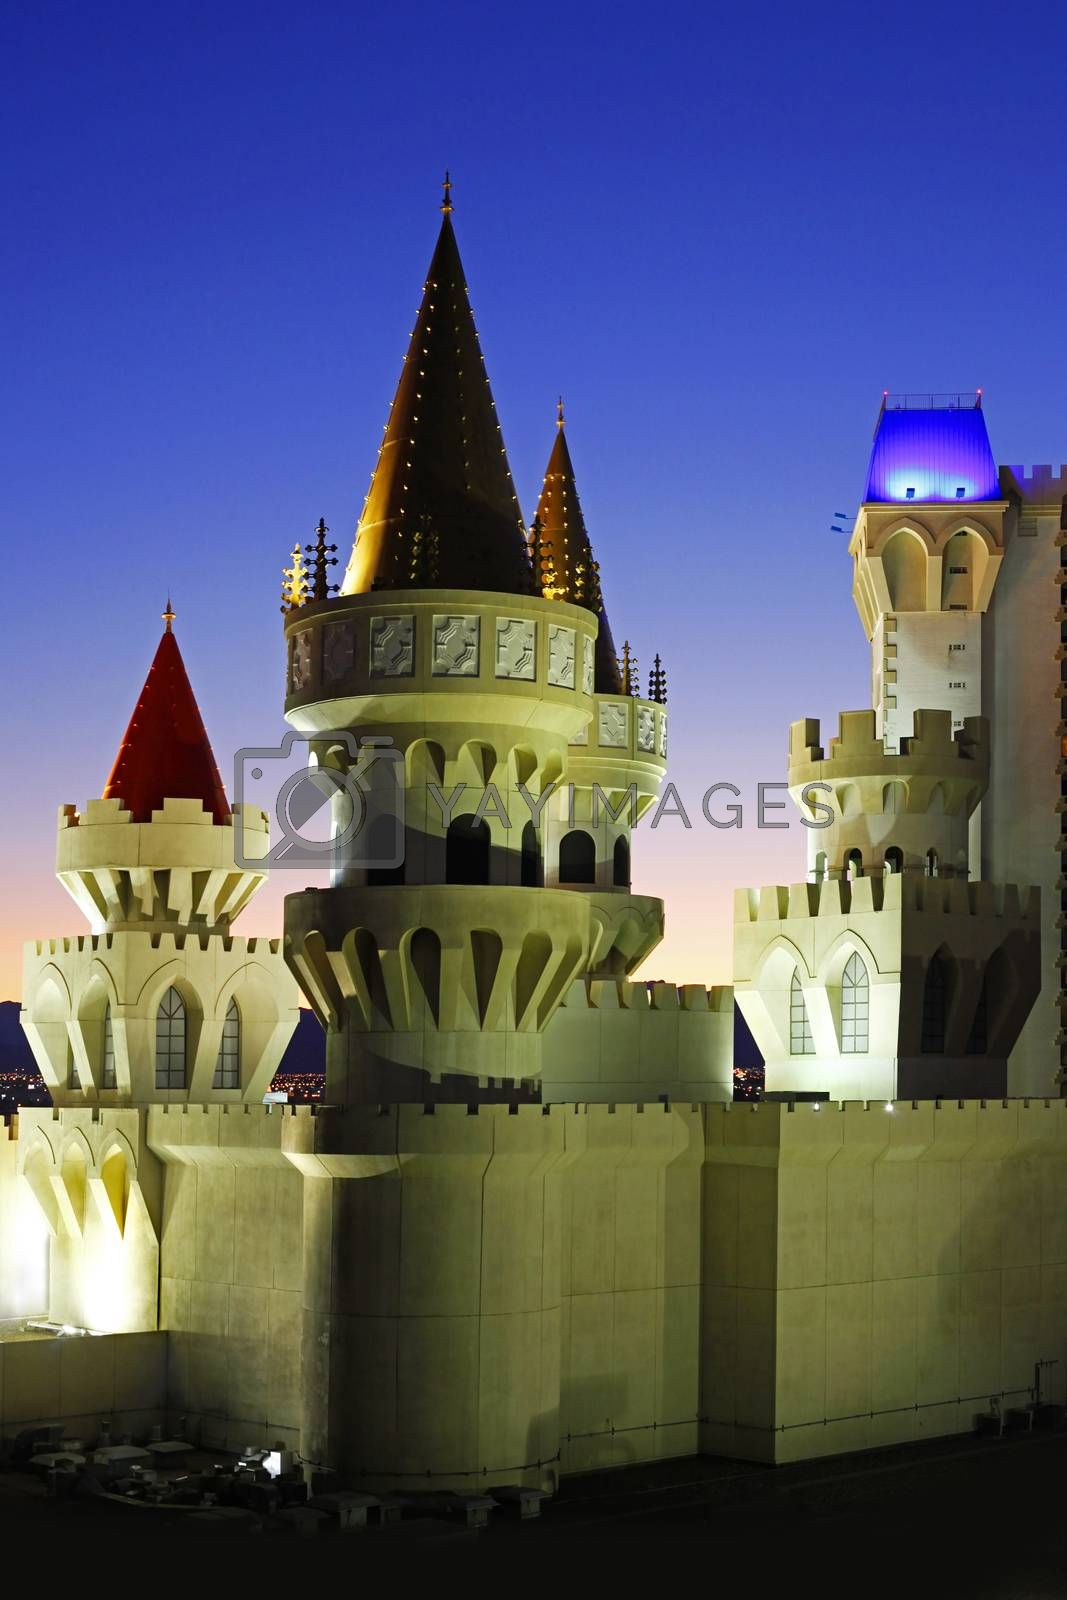 Excalibur Hotel & Casino in Las Vegas at night by friday